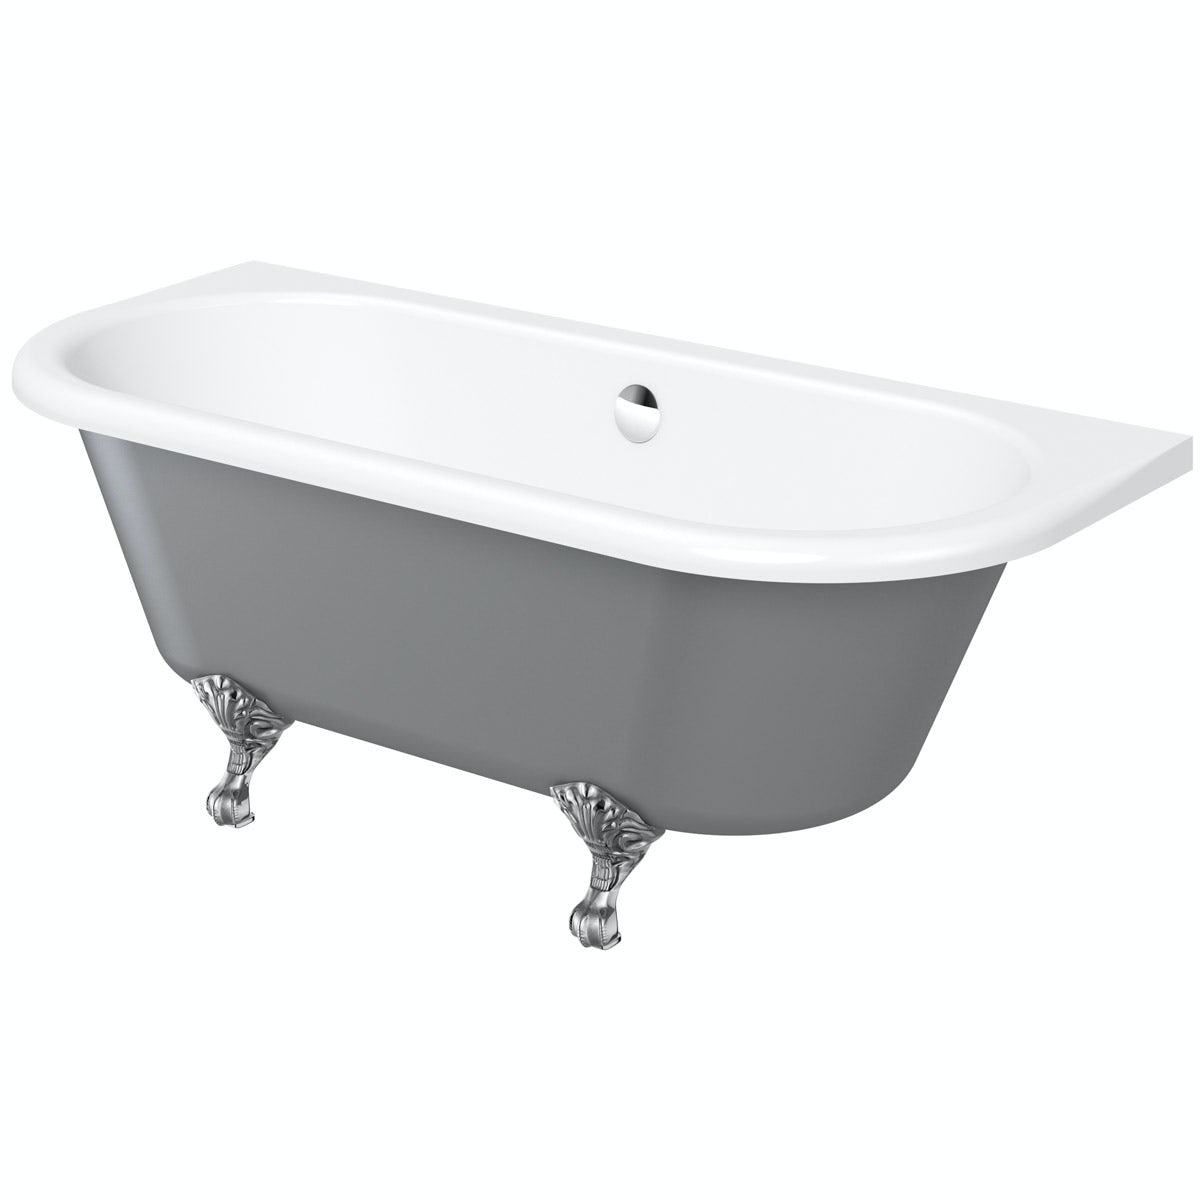 The Bath Co. Dulwich iron grey back to wall roll top bath with chrome ball and claw feet 1700 x 750